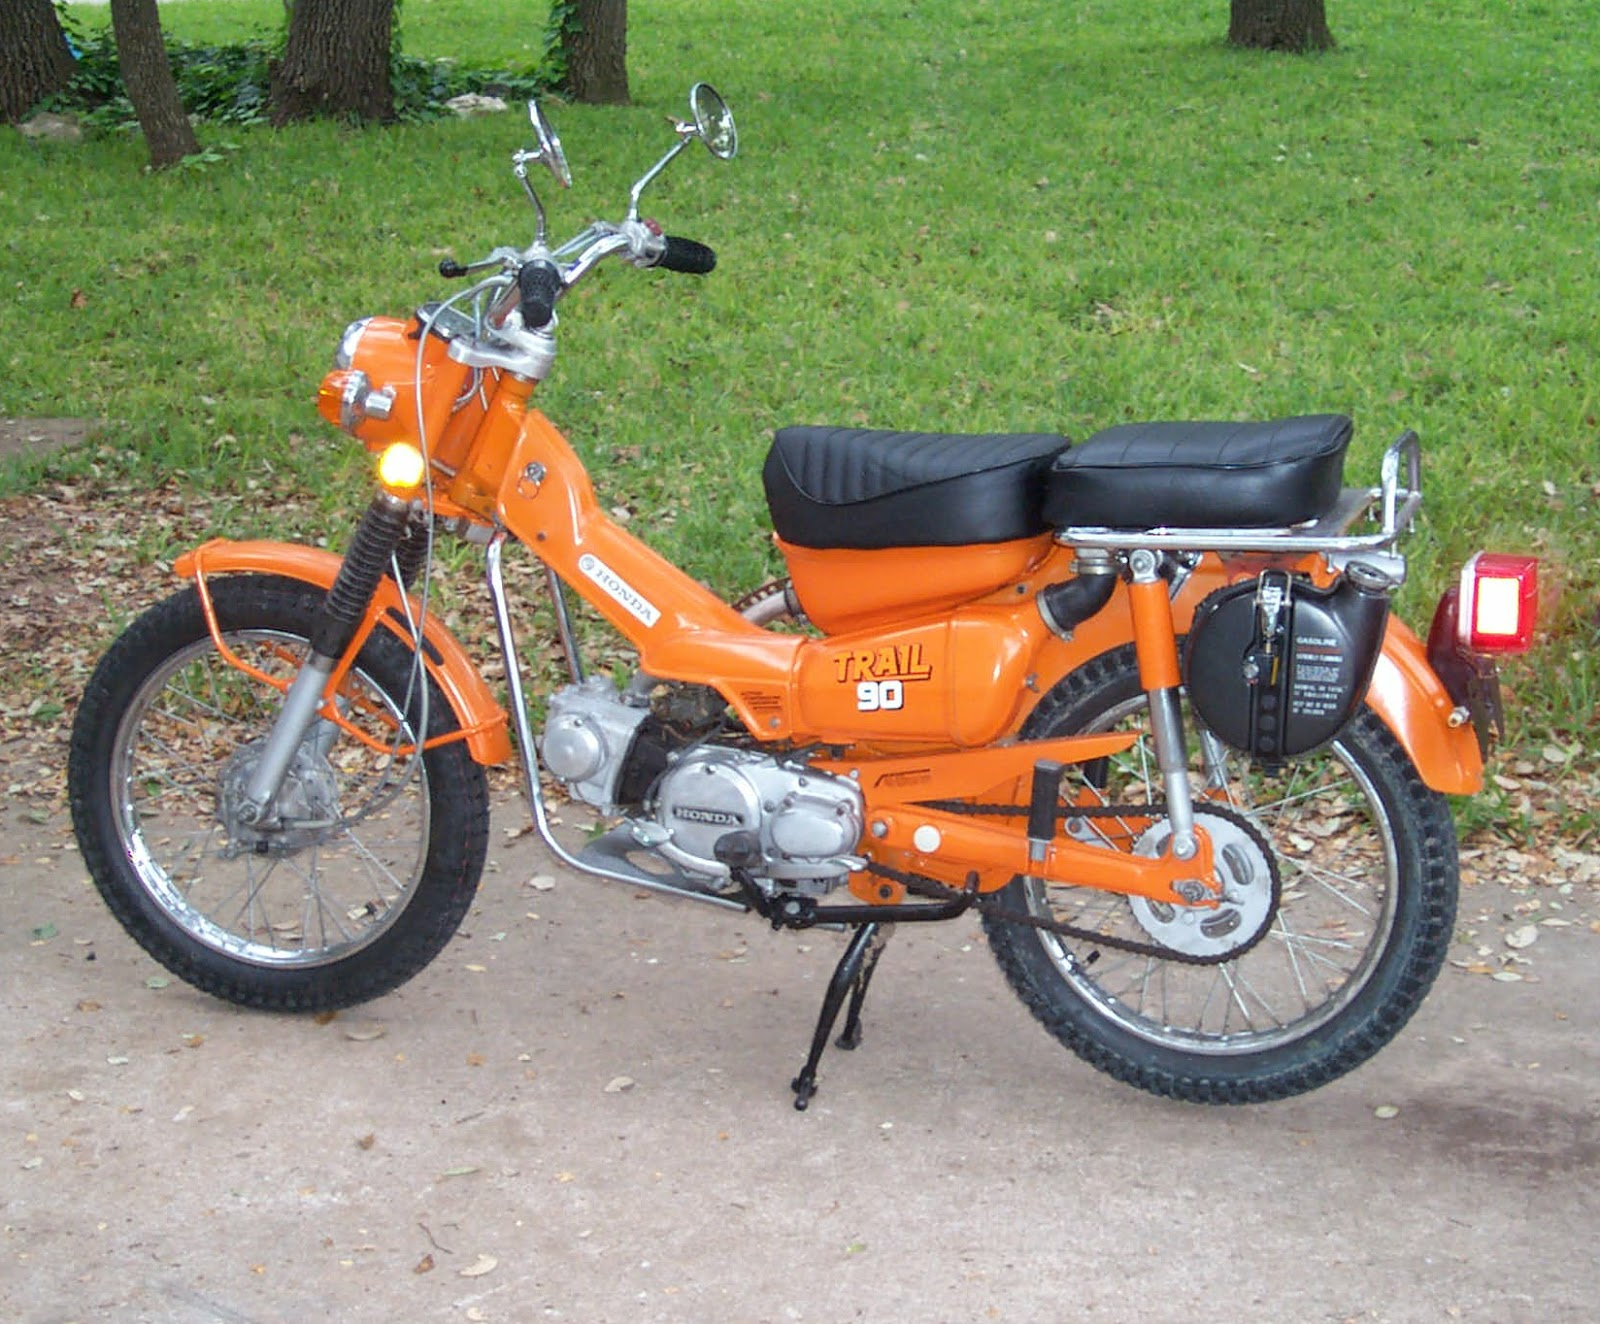 Honda CT90 Motorcycle Wiring Diagram | All about Wiring Diagrams